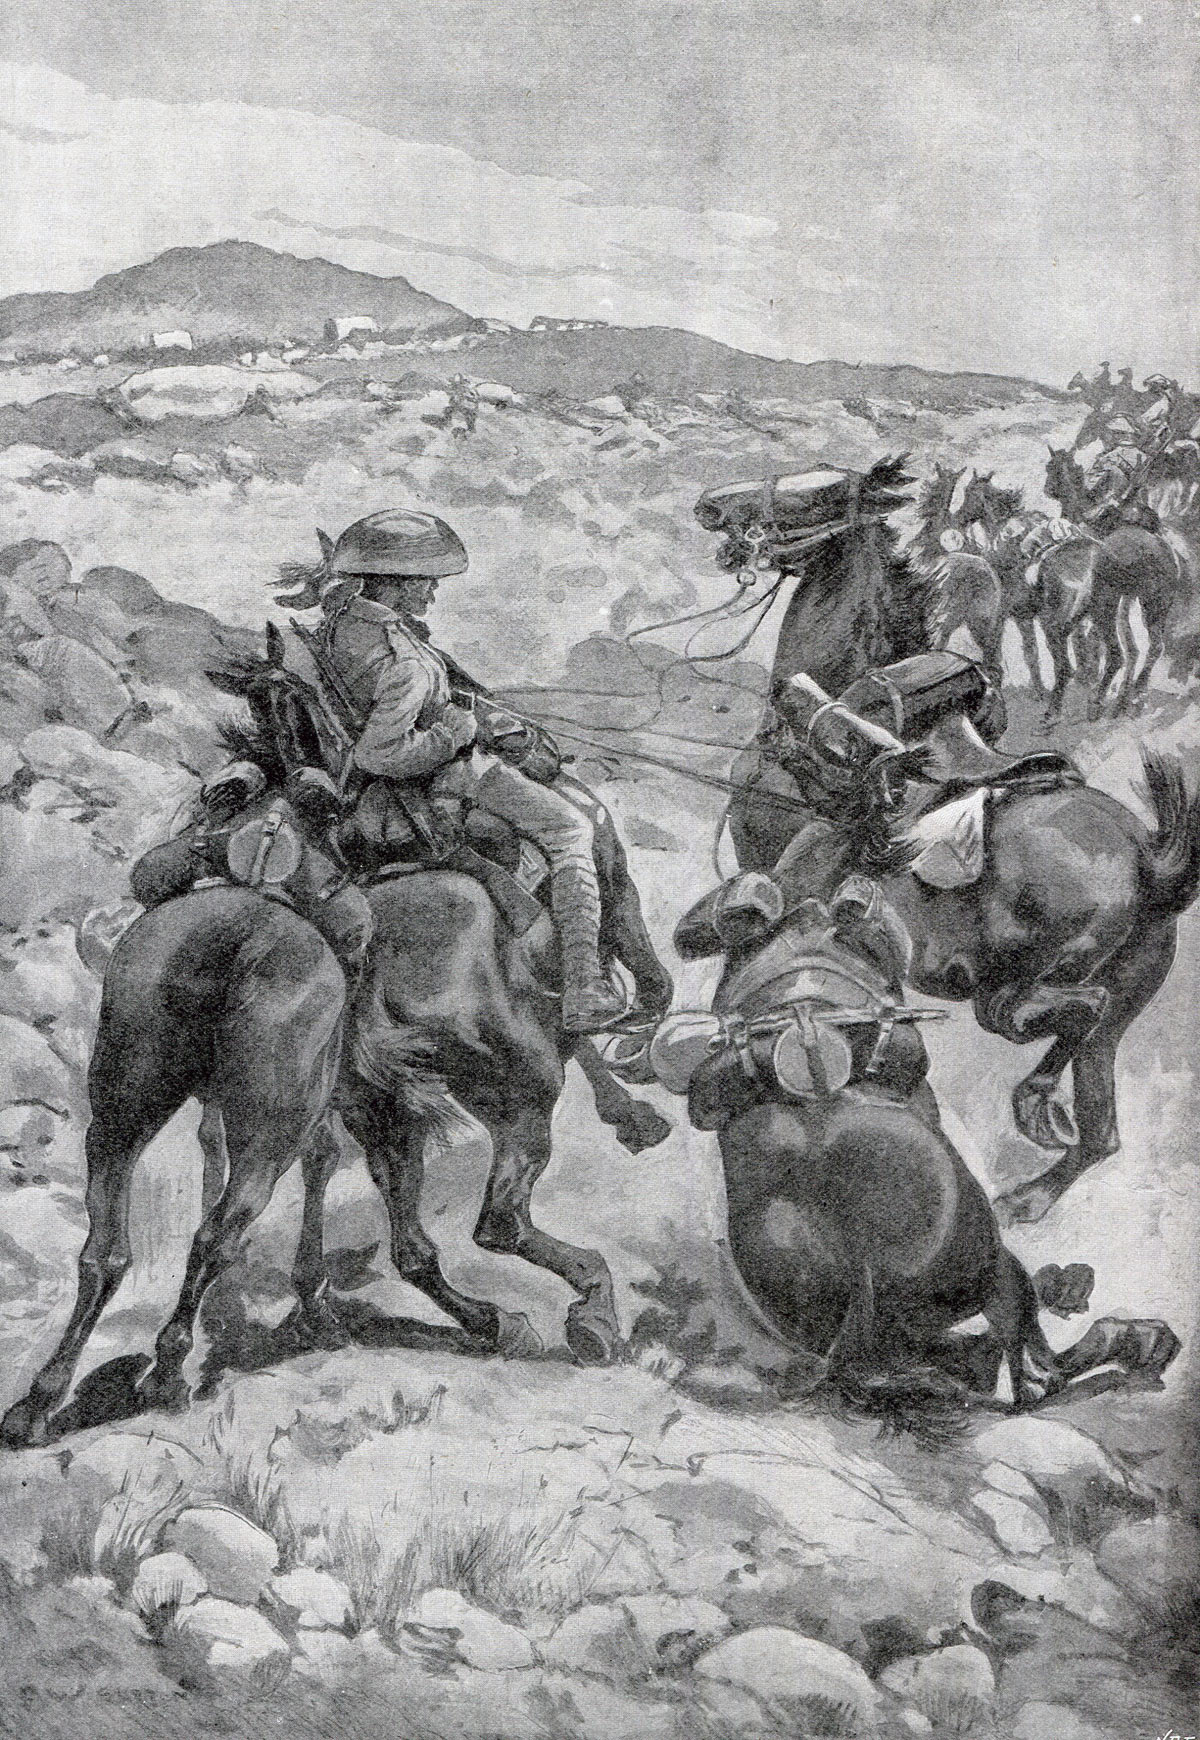 British Mounted Infantry in action: Siege of Kimberley, 14th October 1899 to 15th February 1900 during the Great Boer War: picture by F.W. Burton